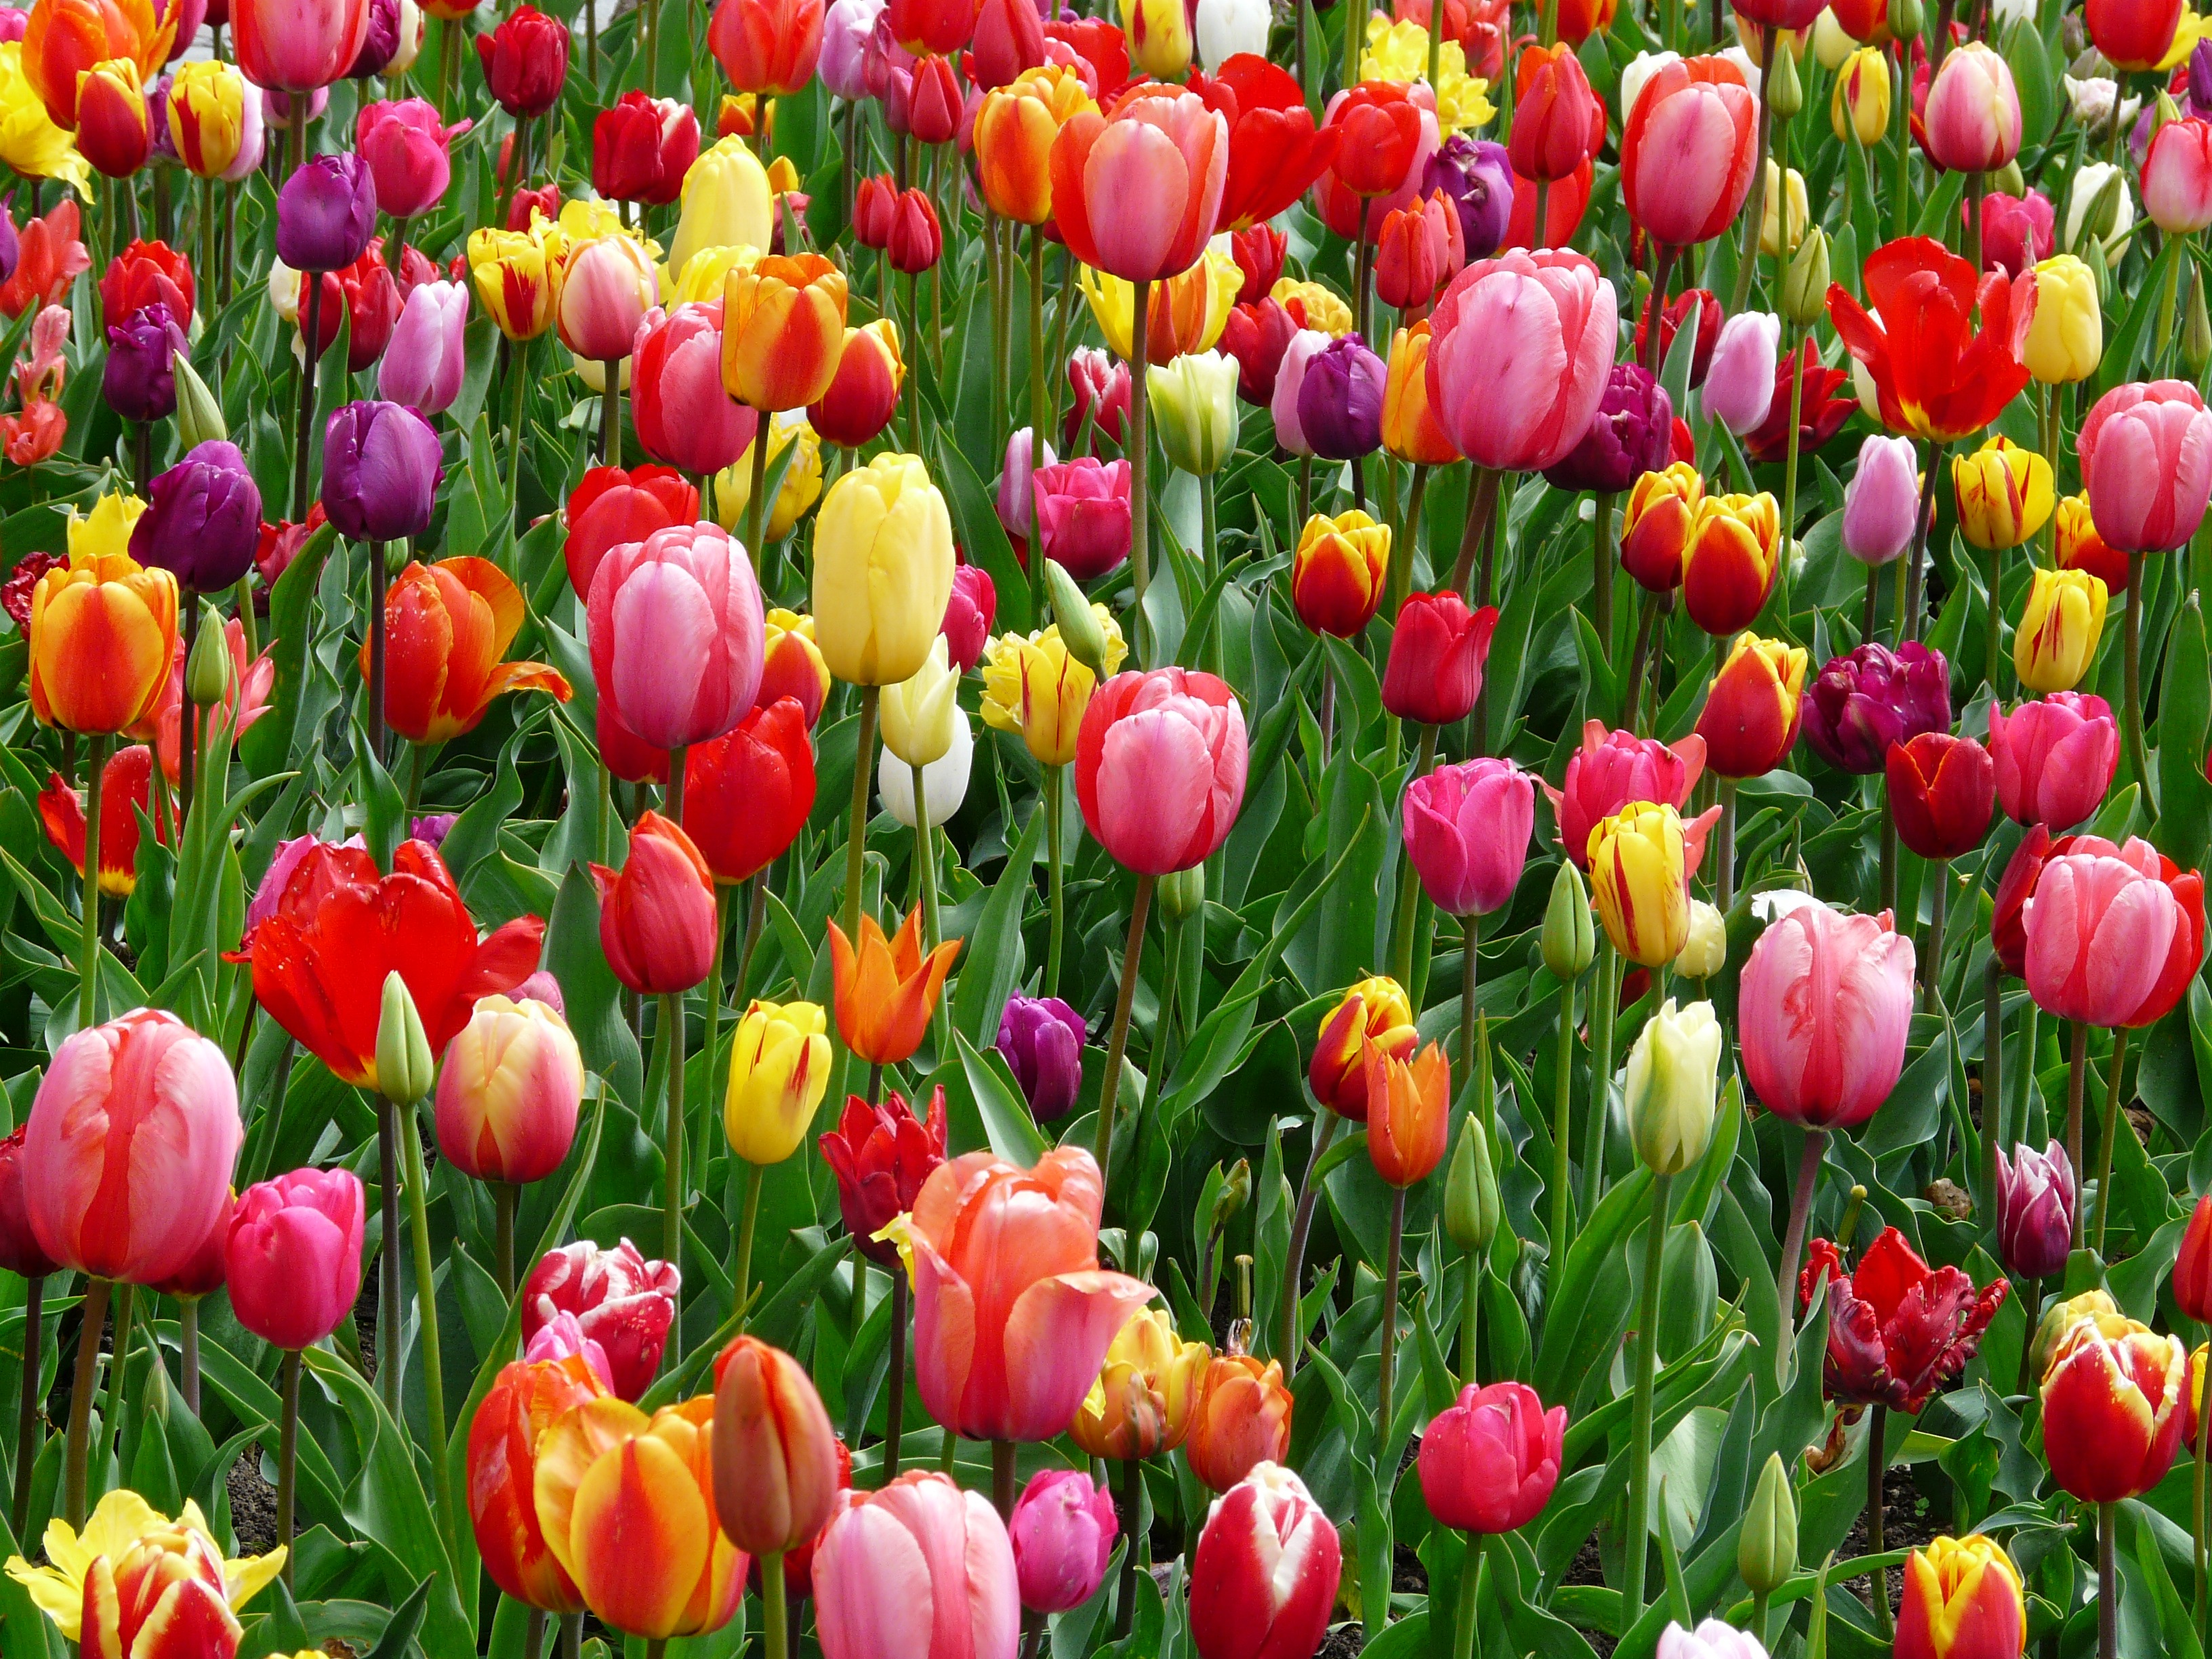 tulips-bed-colorful-color-69776.jpeg (3264×2448)